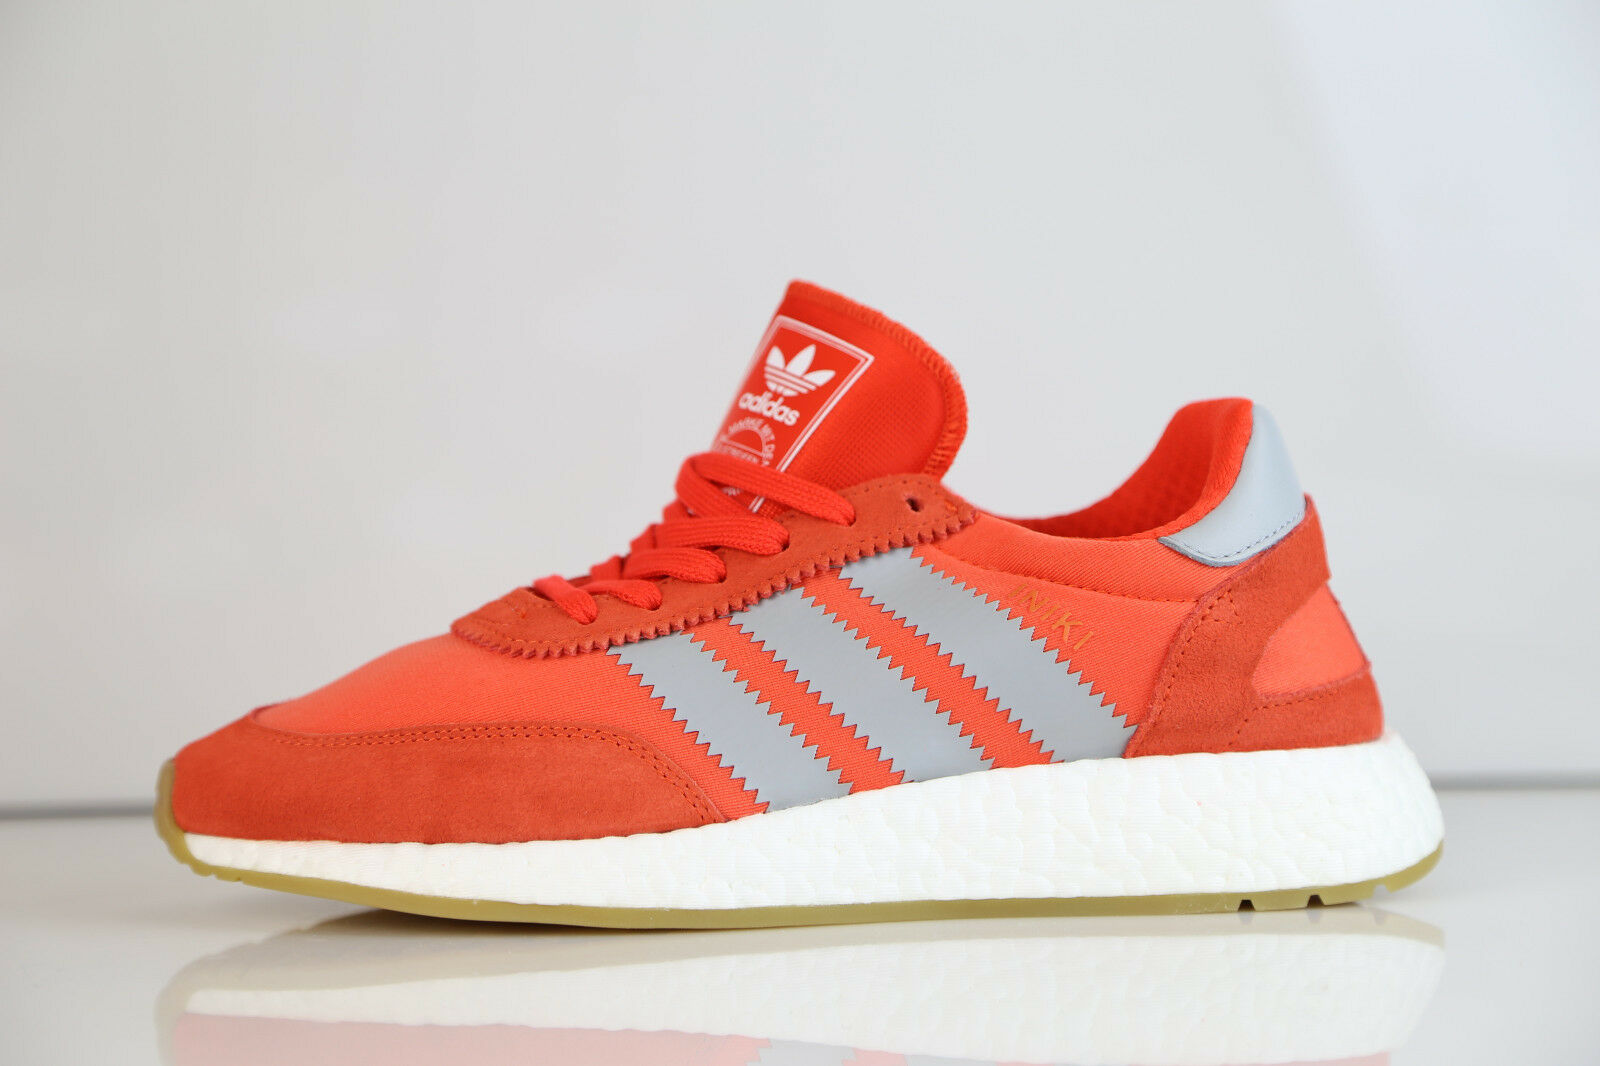 Adidas Originals Donna Iniki Runner W Energy Red Orange Gum BA9998 6-10 boost